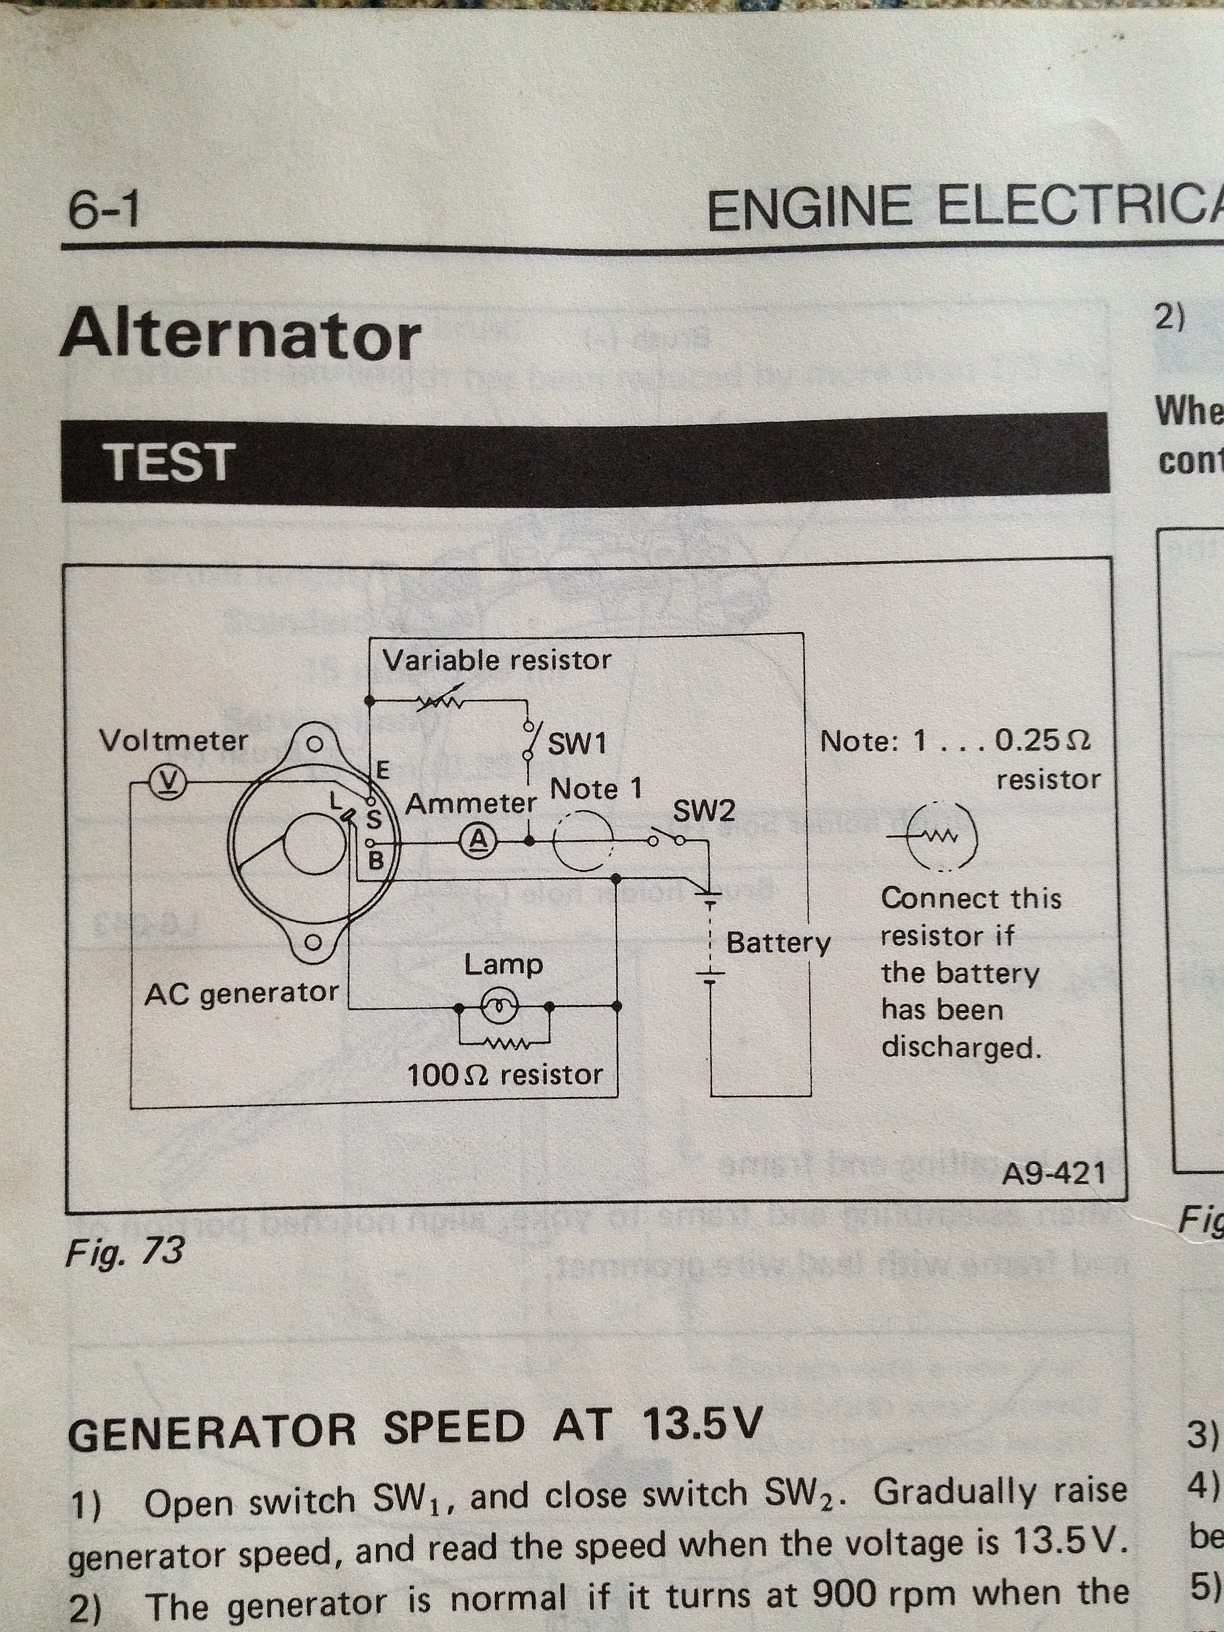 Subaru Alternator Wiring Schematic Diagrams John Deere 1010 Tractor Coil Diagram Third Level 2 Pin